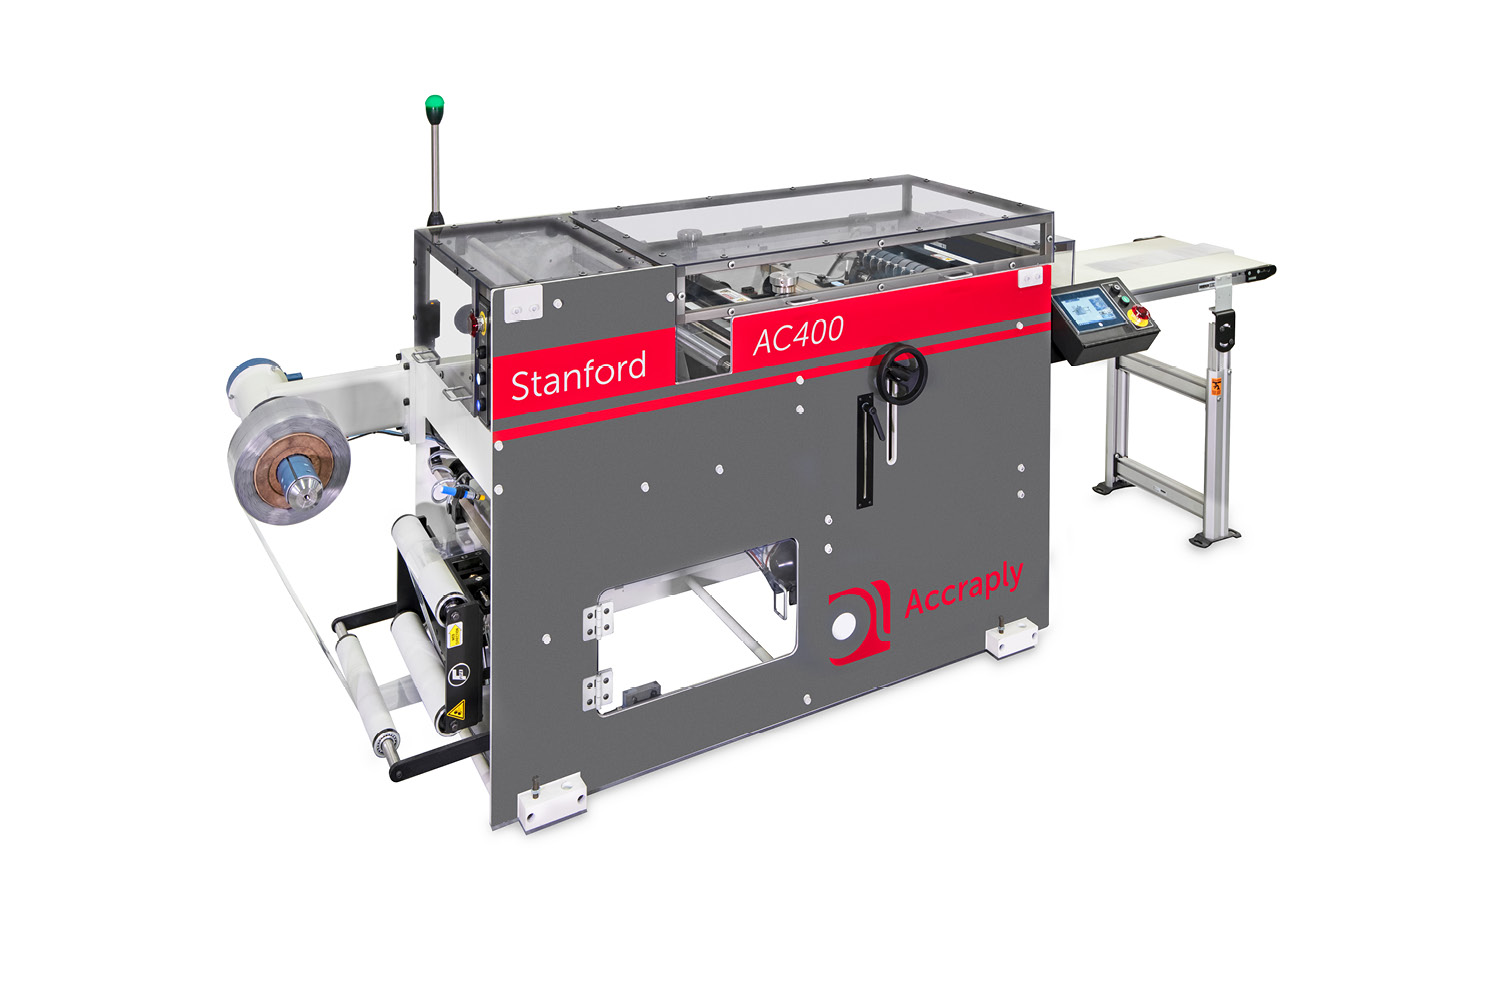 Stanford Shrink Sleeve Converting Equipment | Accraply